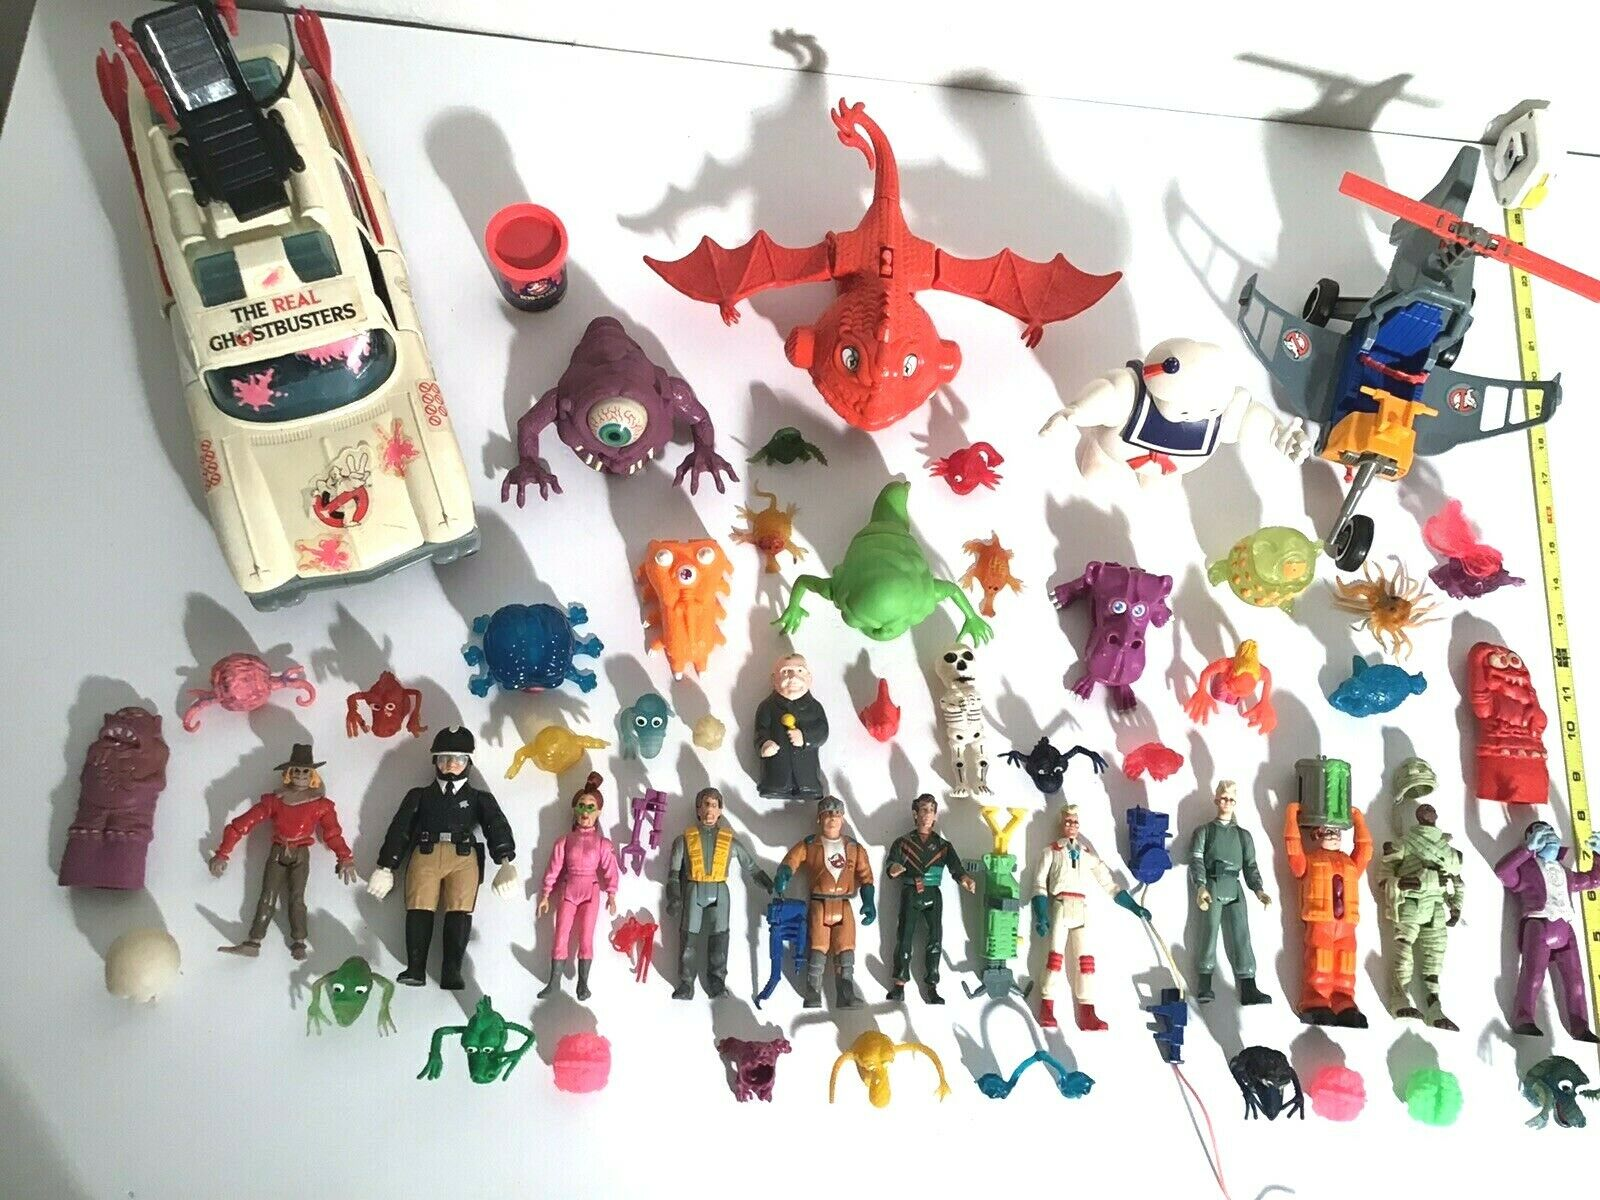 HUGE VINTAGE LOT OF 57 57 57 REAL GHOSTBUSTERS FIGURES, VEHICLES, GHOSTS&WEAPONS 1980s 642b06